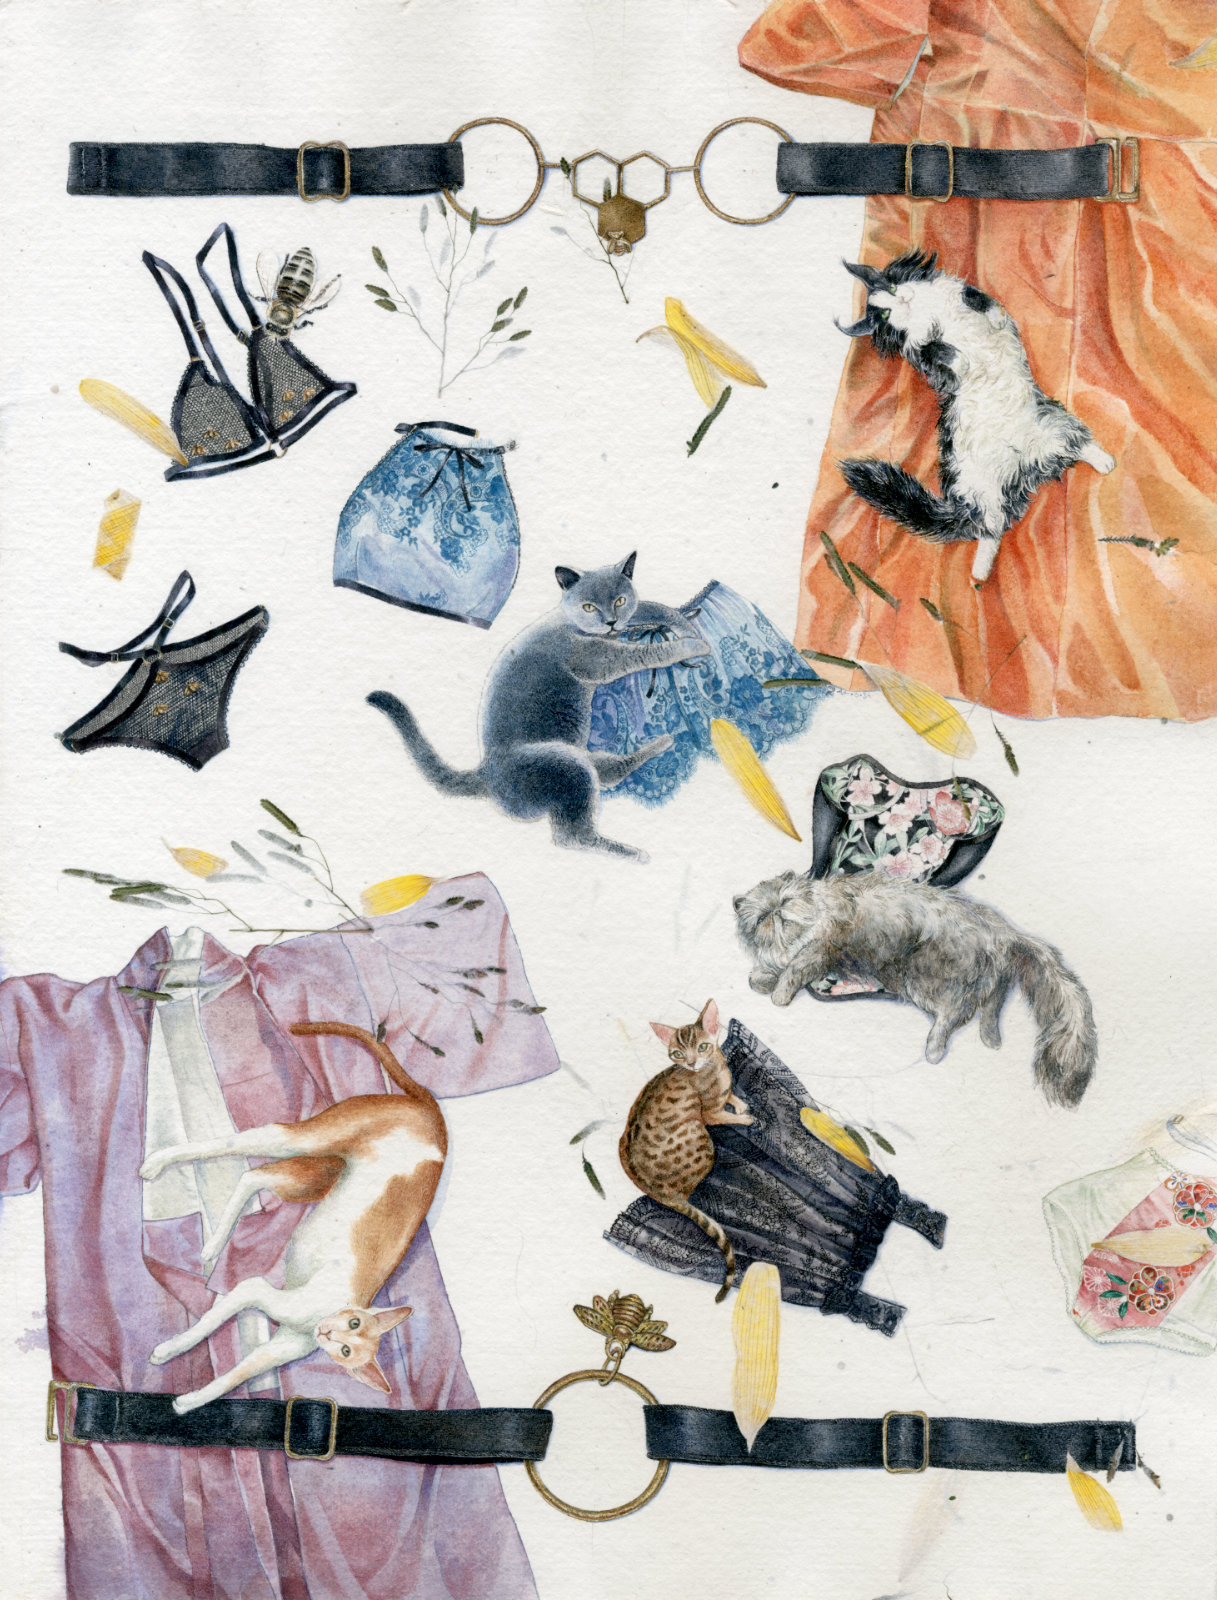 Technical illustration of a so-called herbarium based on lingerie brand Karolina Laskowska and painted for a contest, with kimonos, lounging cats, bras, panties, a corset and a lace camisole, with inclusions or real florals unto the paper.